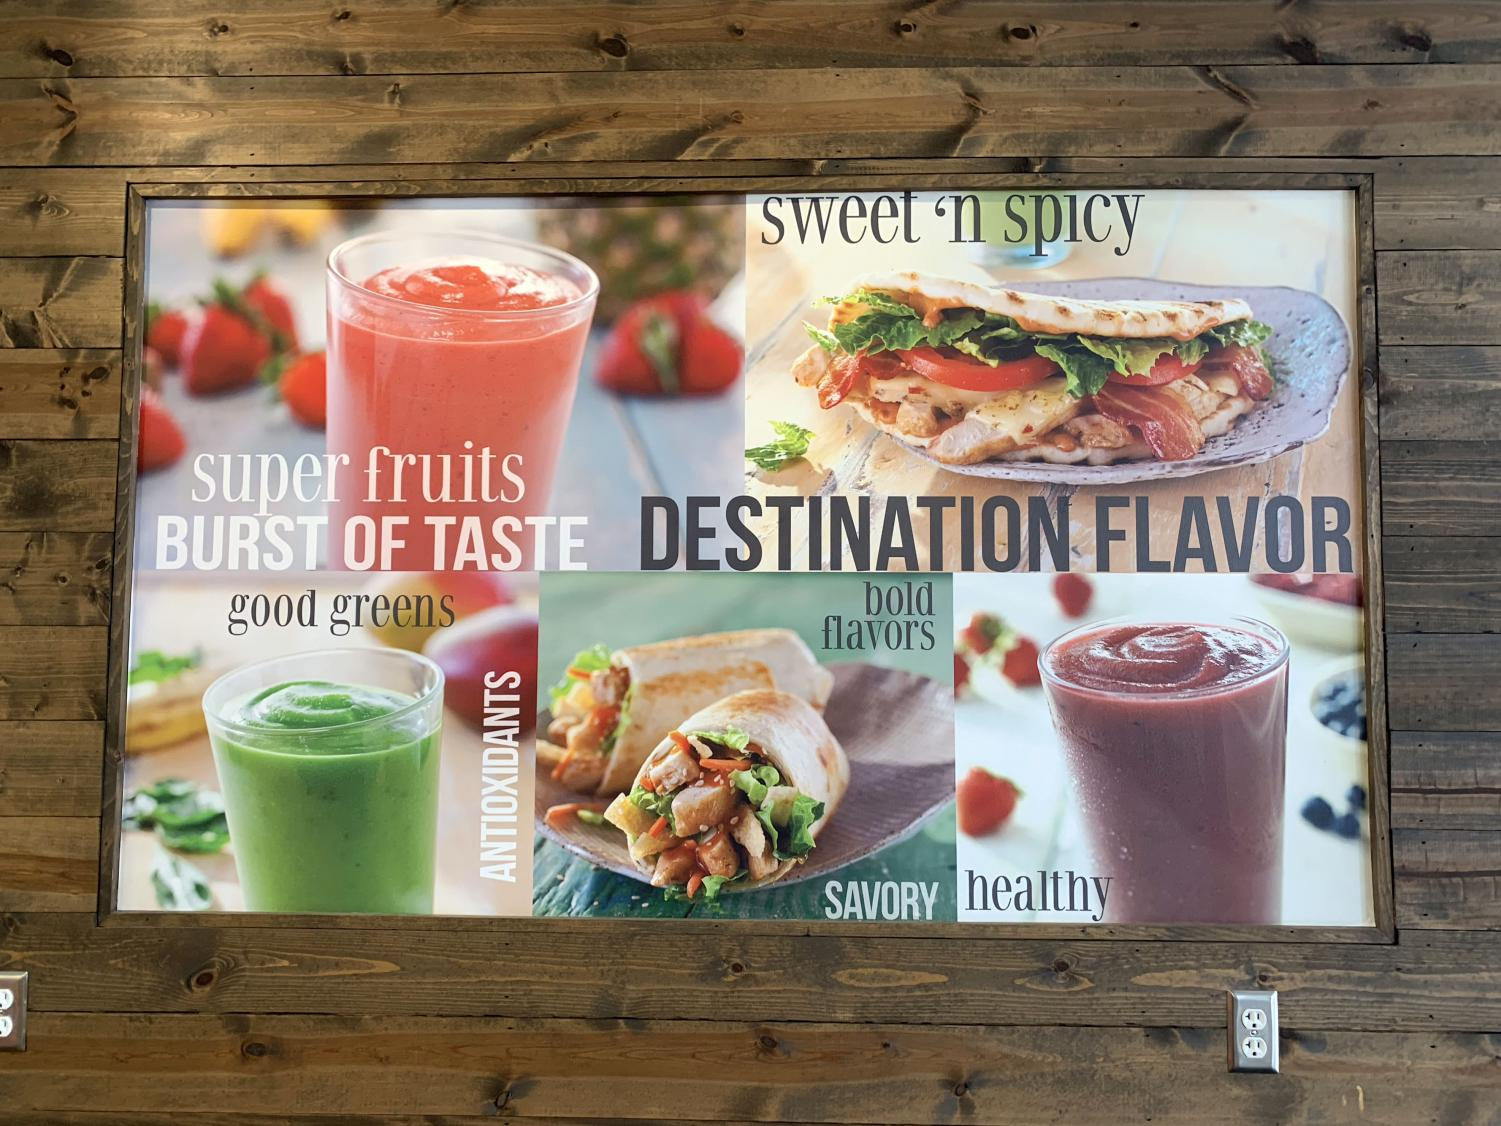 Tropical Smoothie Cafe is located in Knowlwood and offers different types of smoothies and food options.